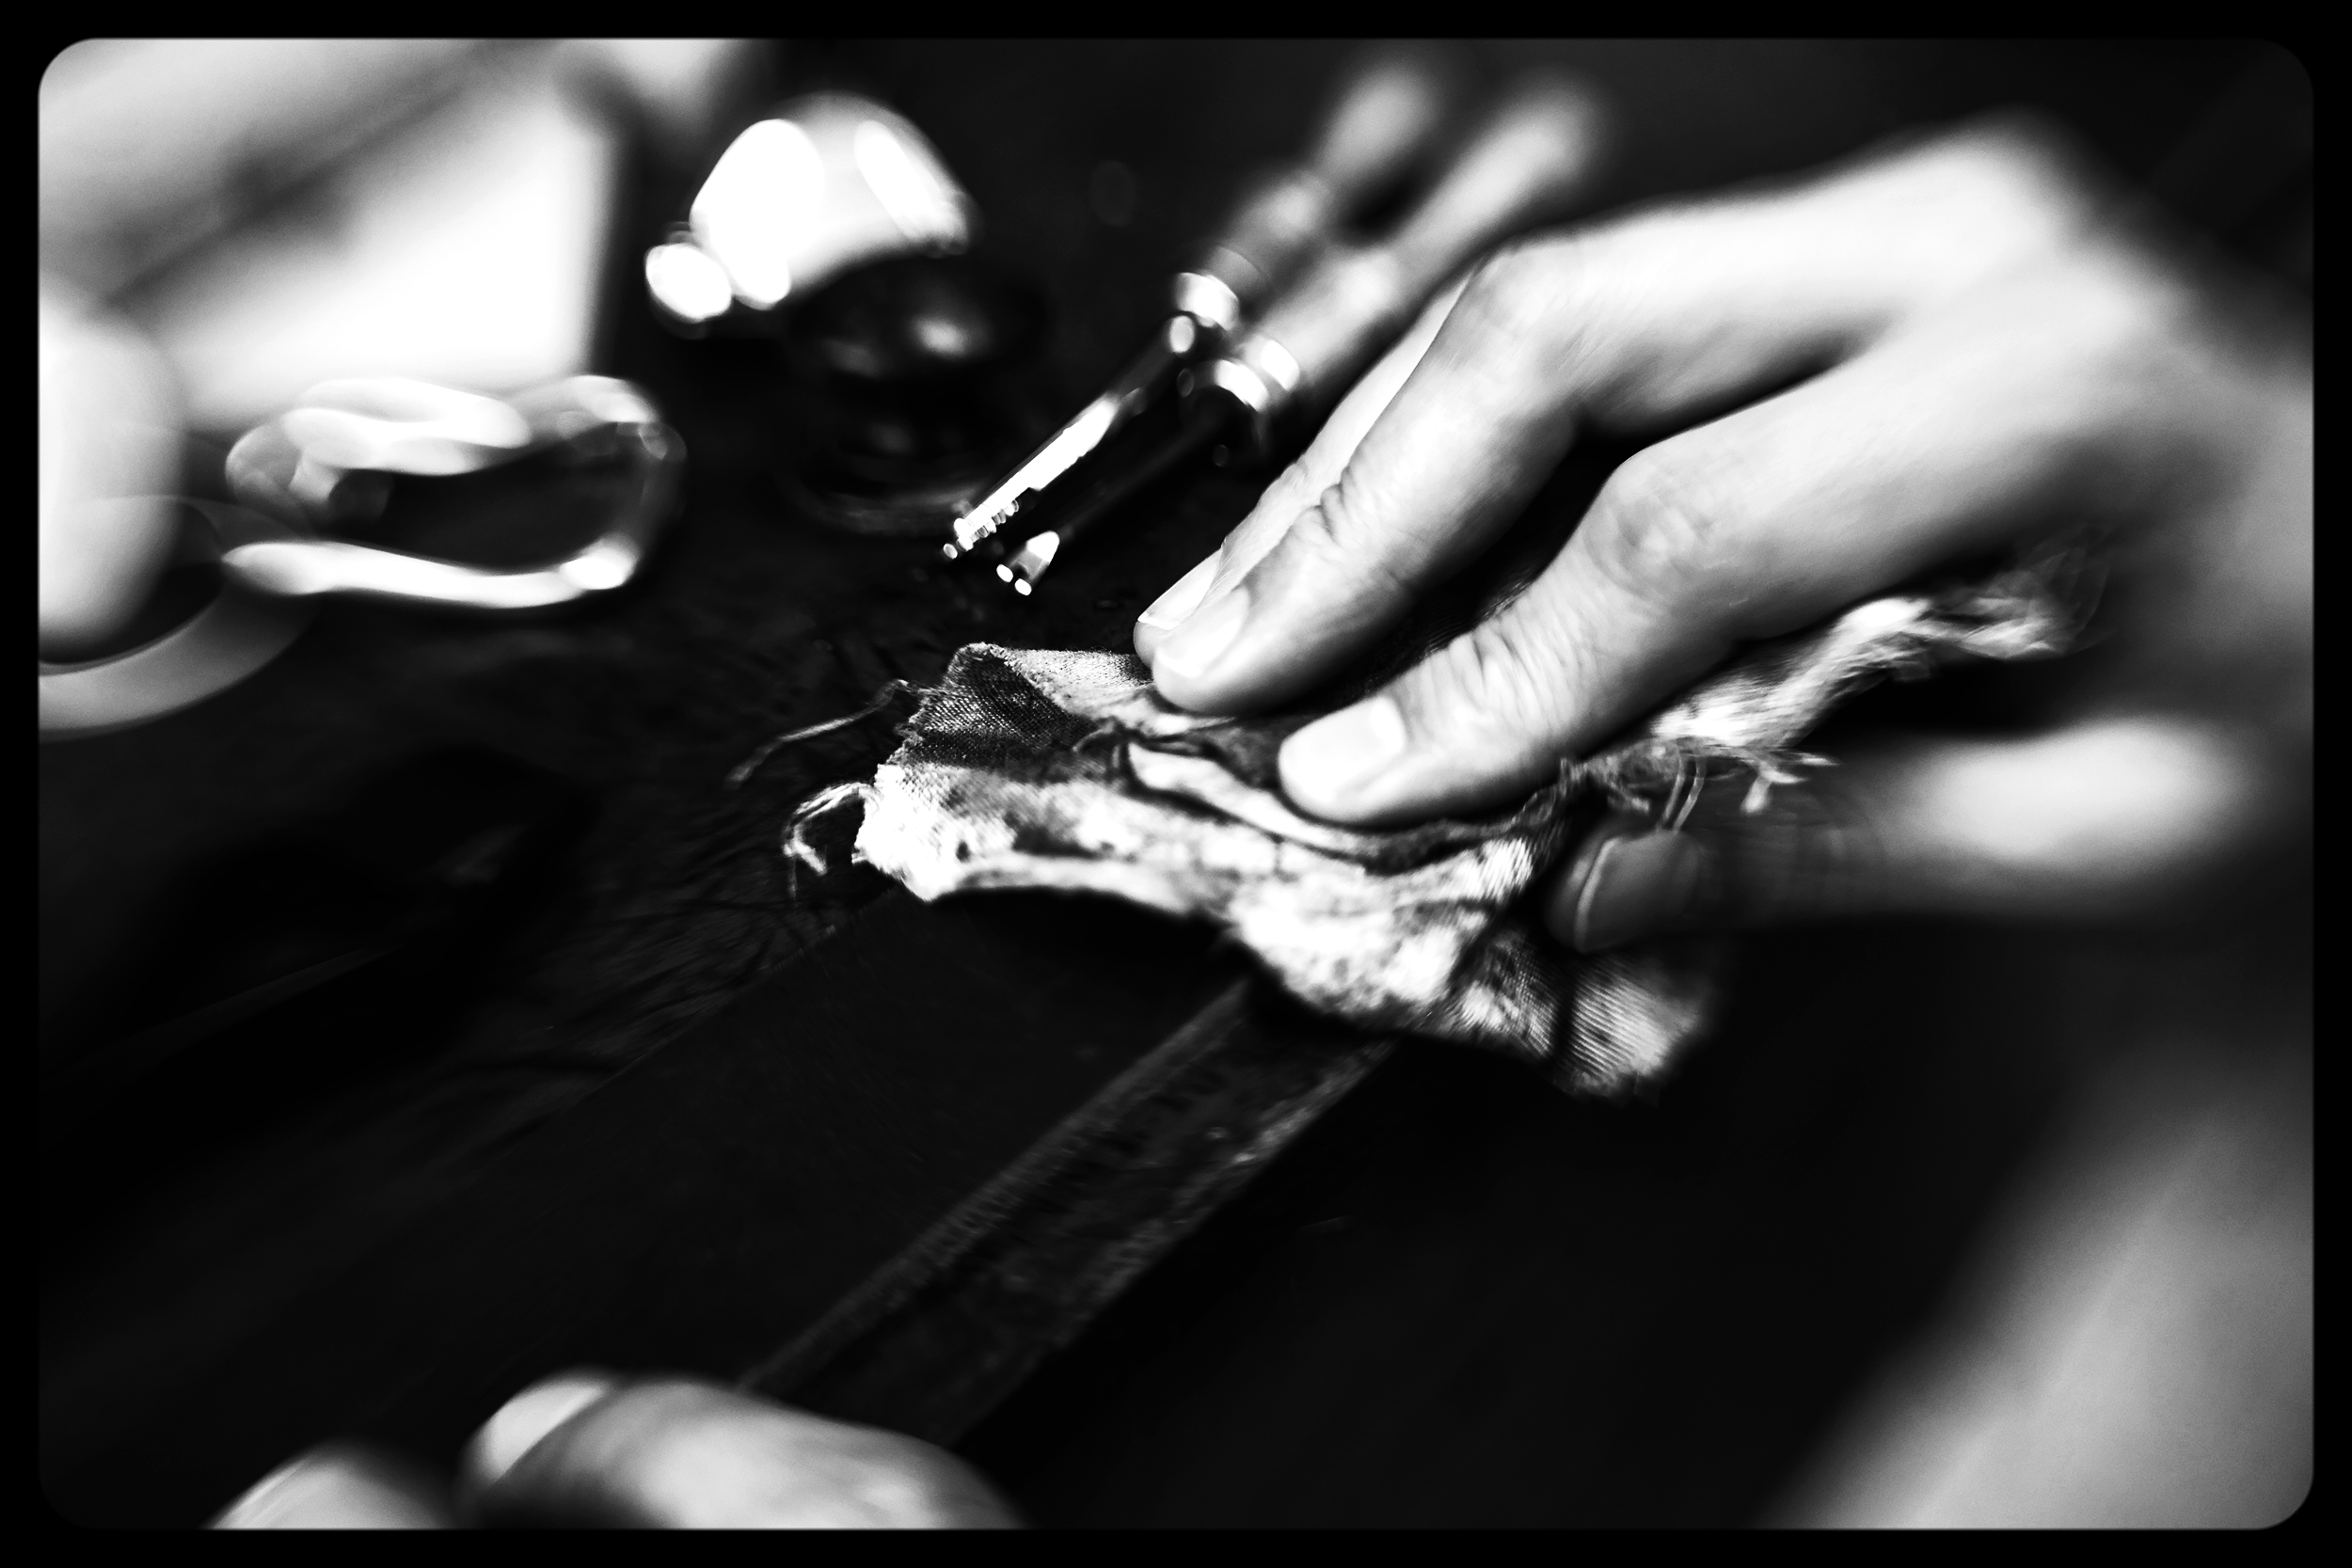 Each of our belts are individually crafted by Master Saddlers